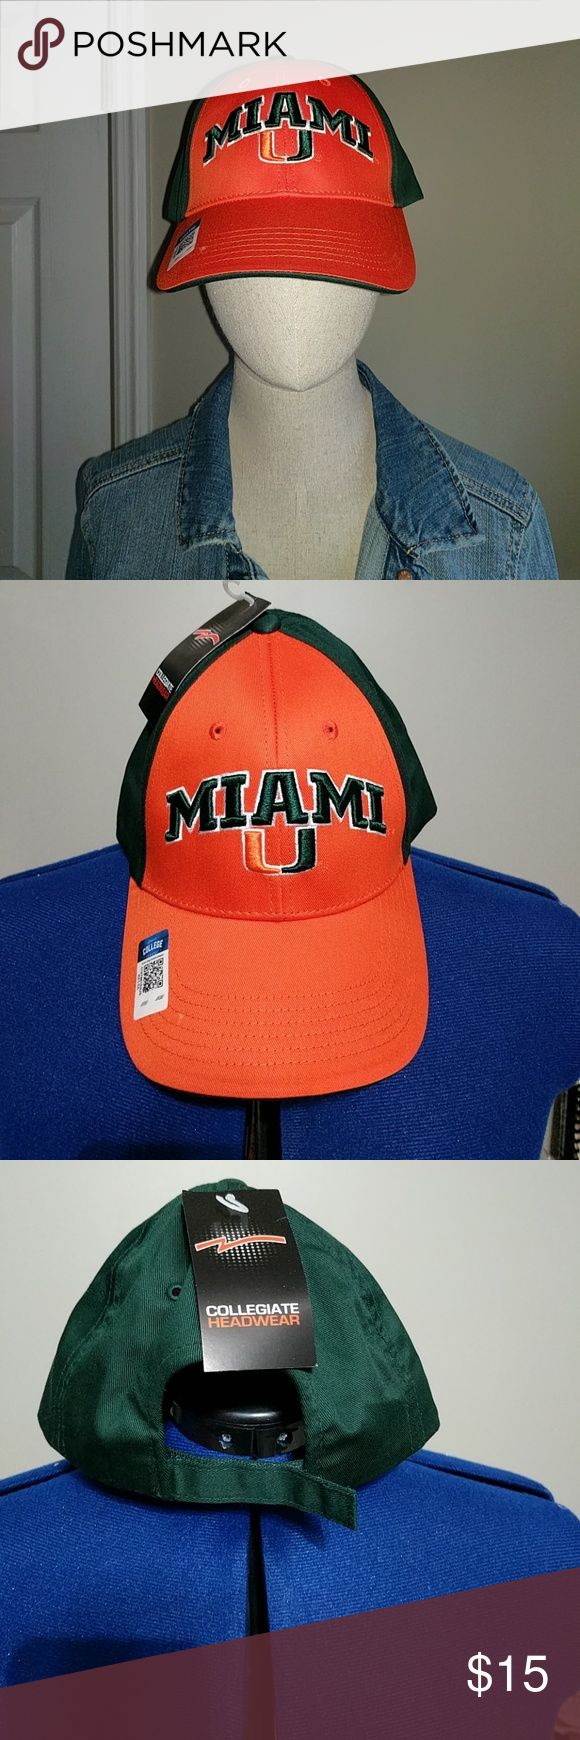 University of Miami cap NWT Orange in front, green in back. Velcro adjustable. Go Canes! collegiate headwear Accessories Hats